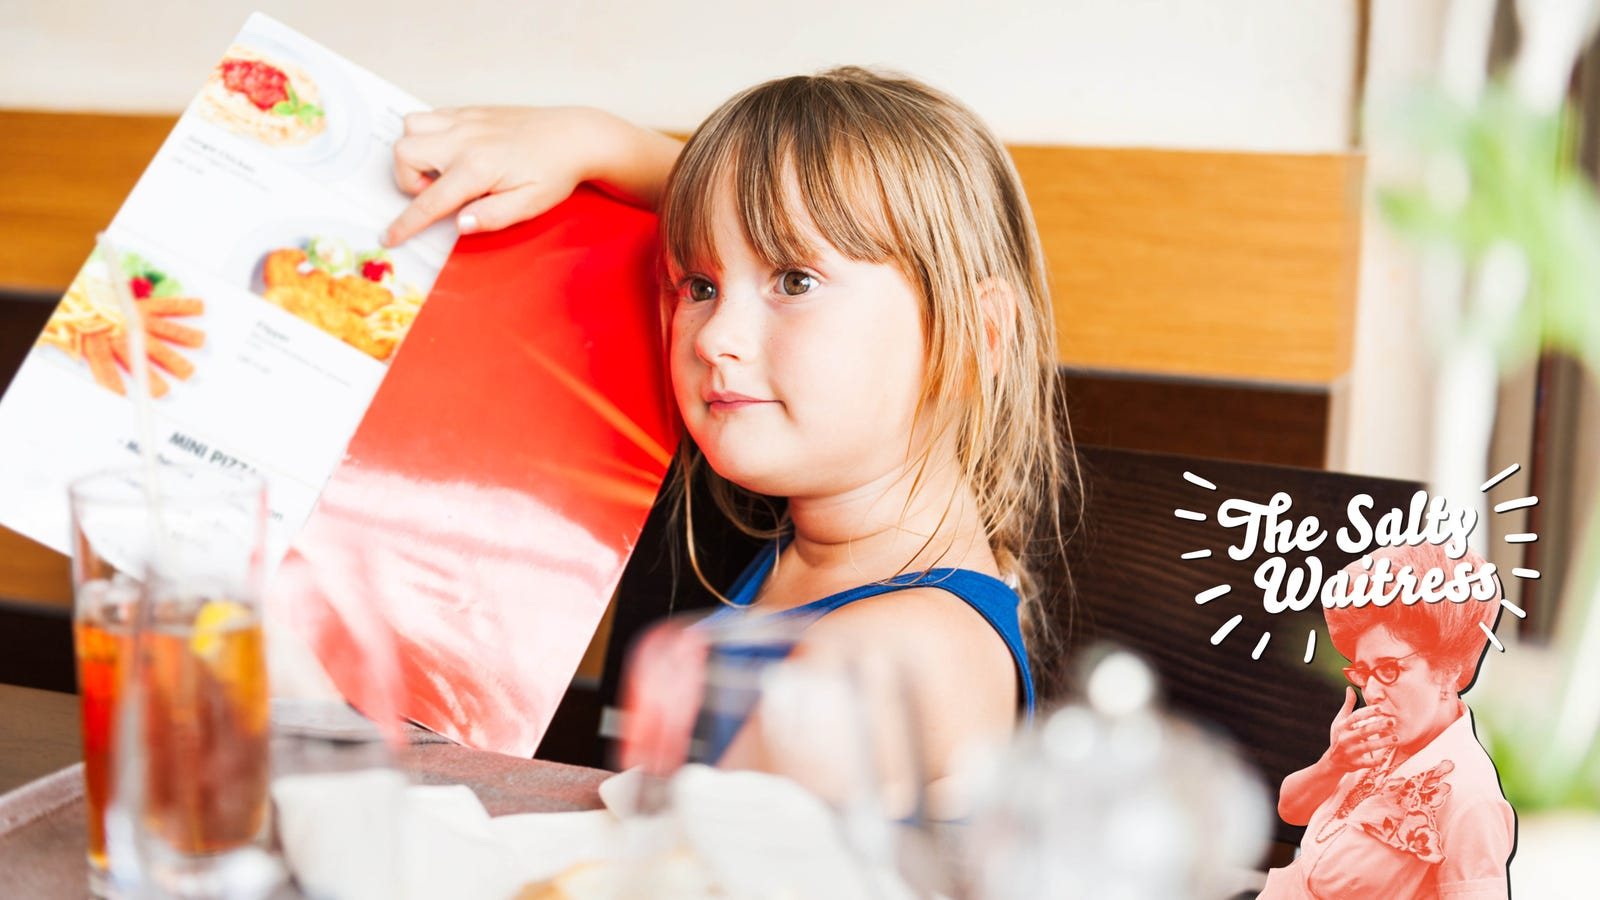 Ask The Salty Waitress: This kid looks too old for the kids' menu